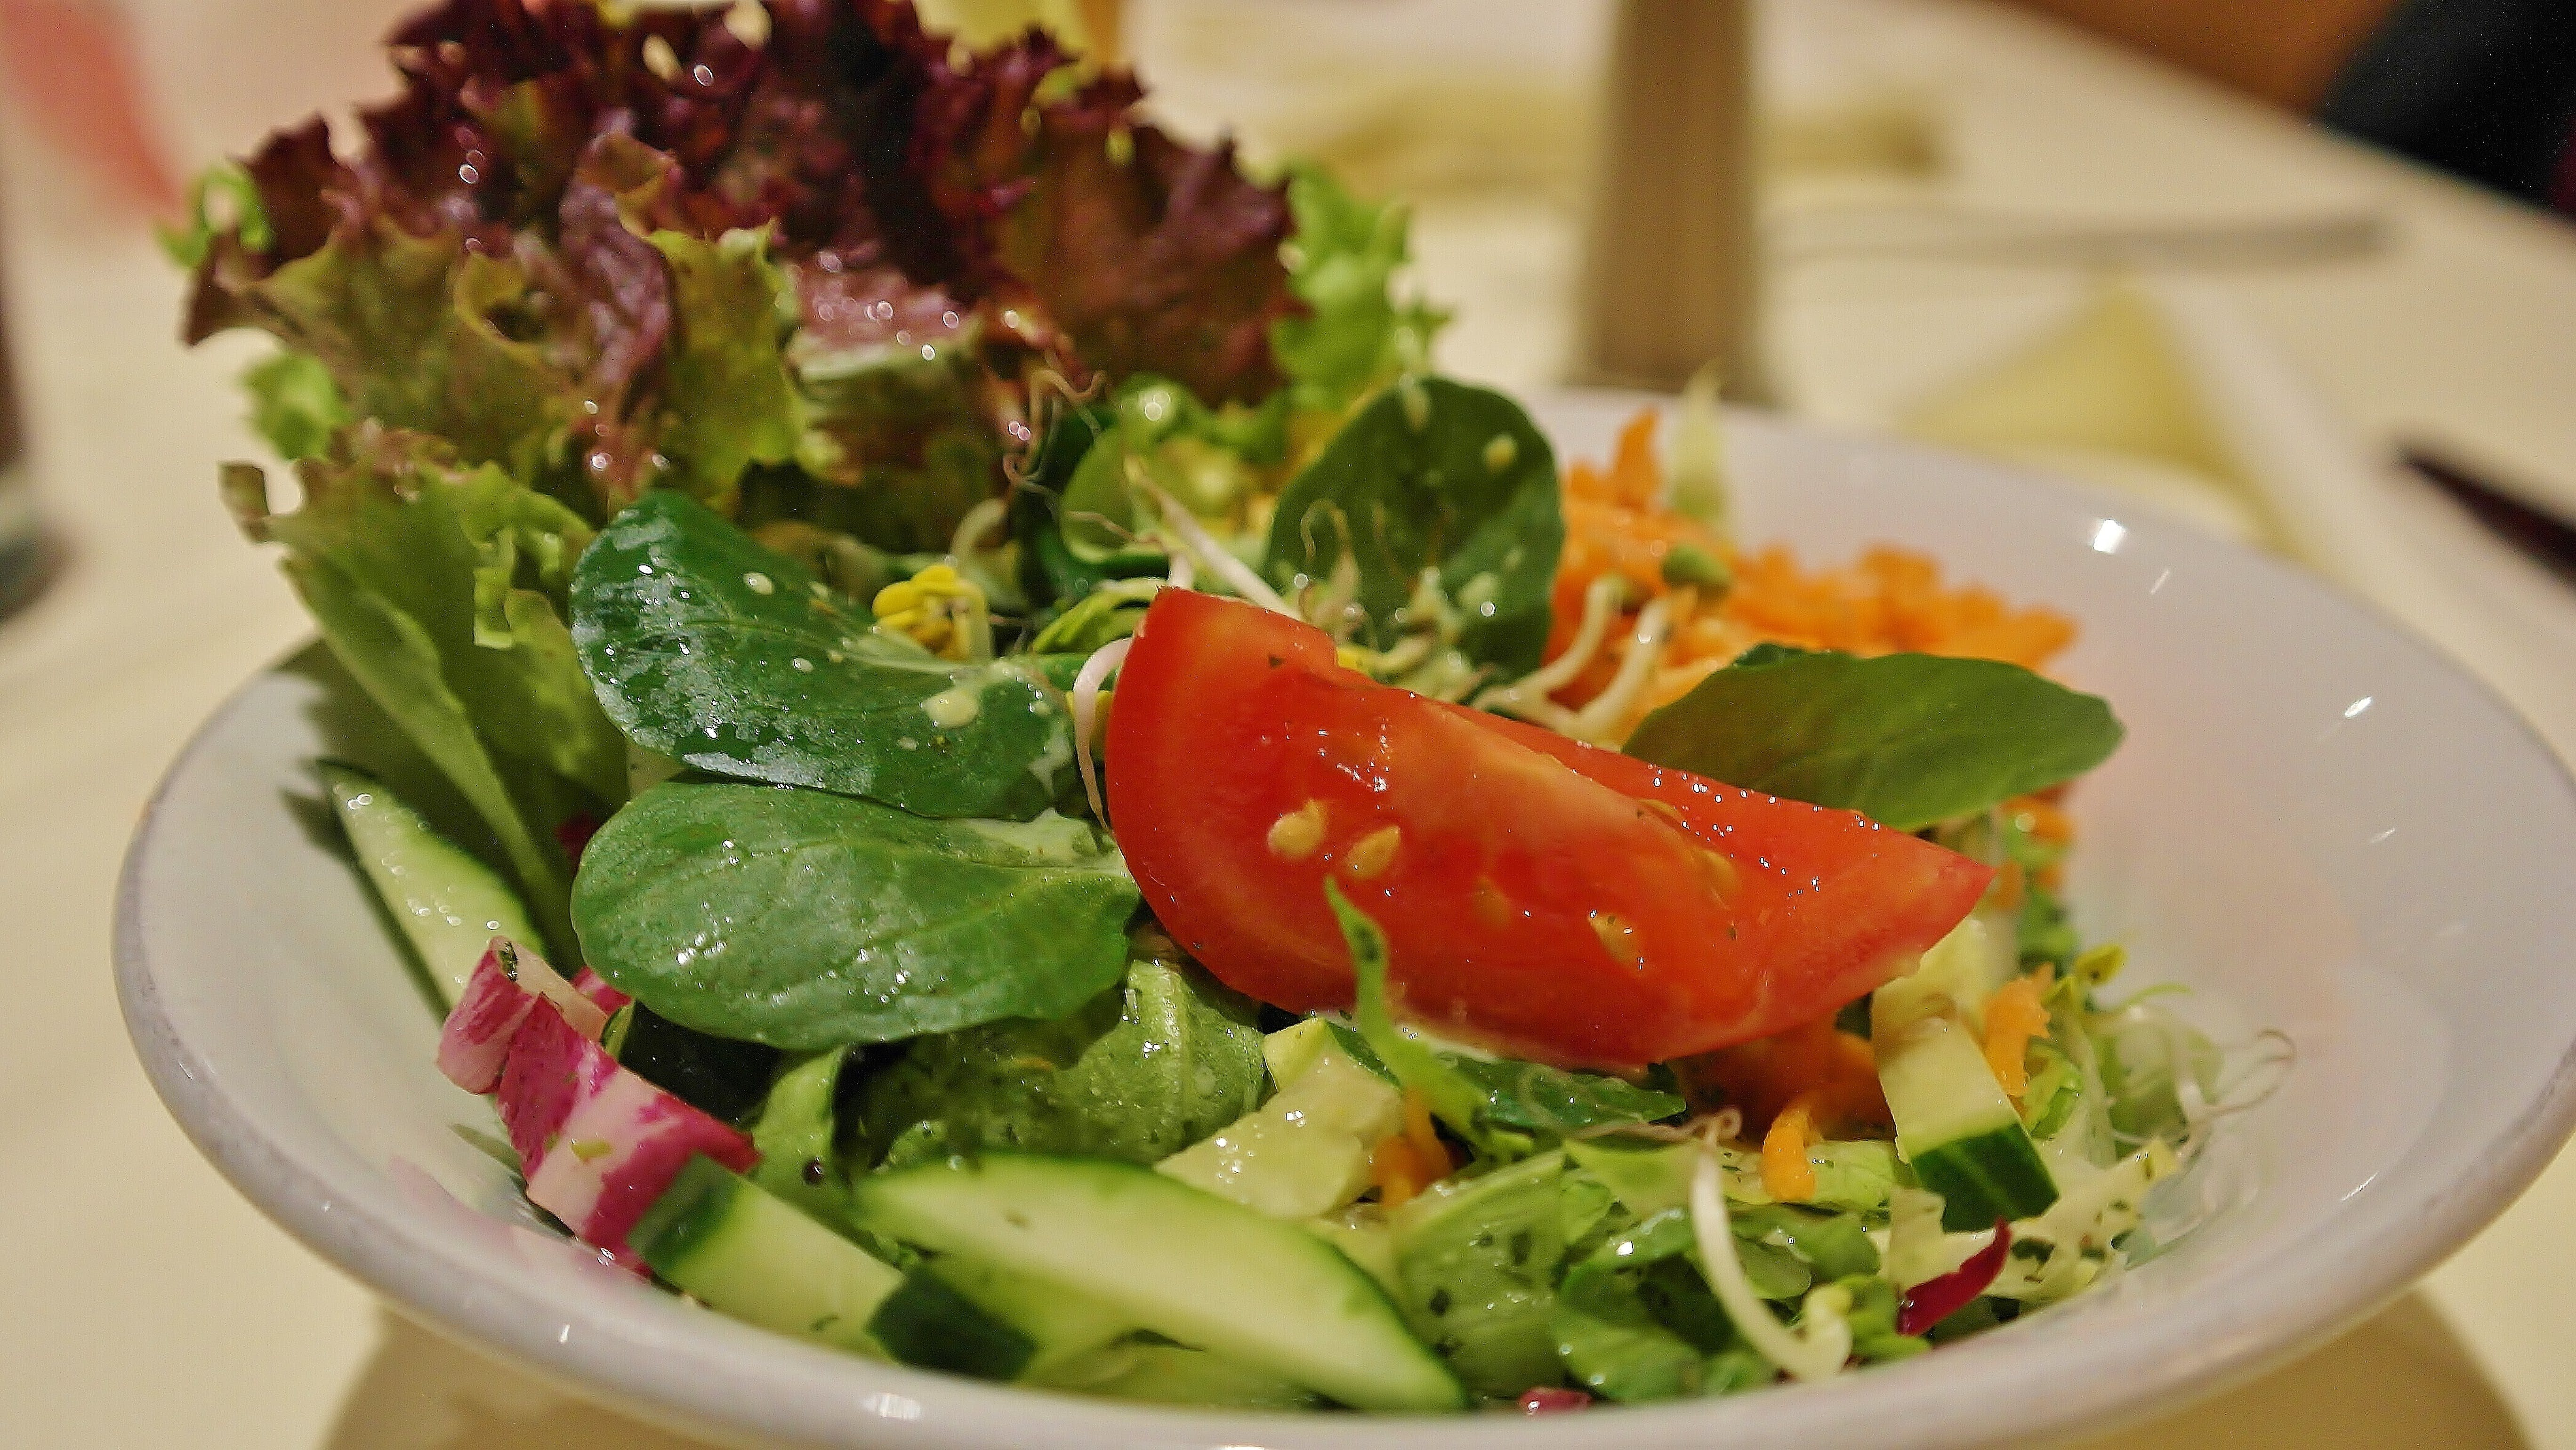 Free stock photo of food, salad, healthy, red